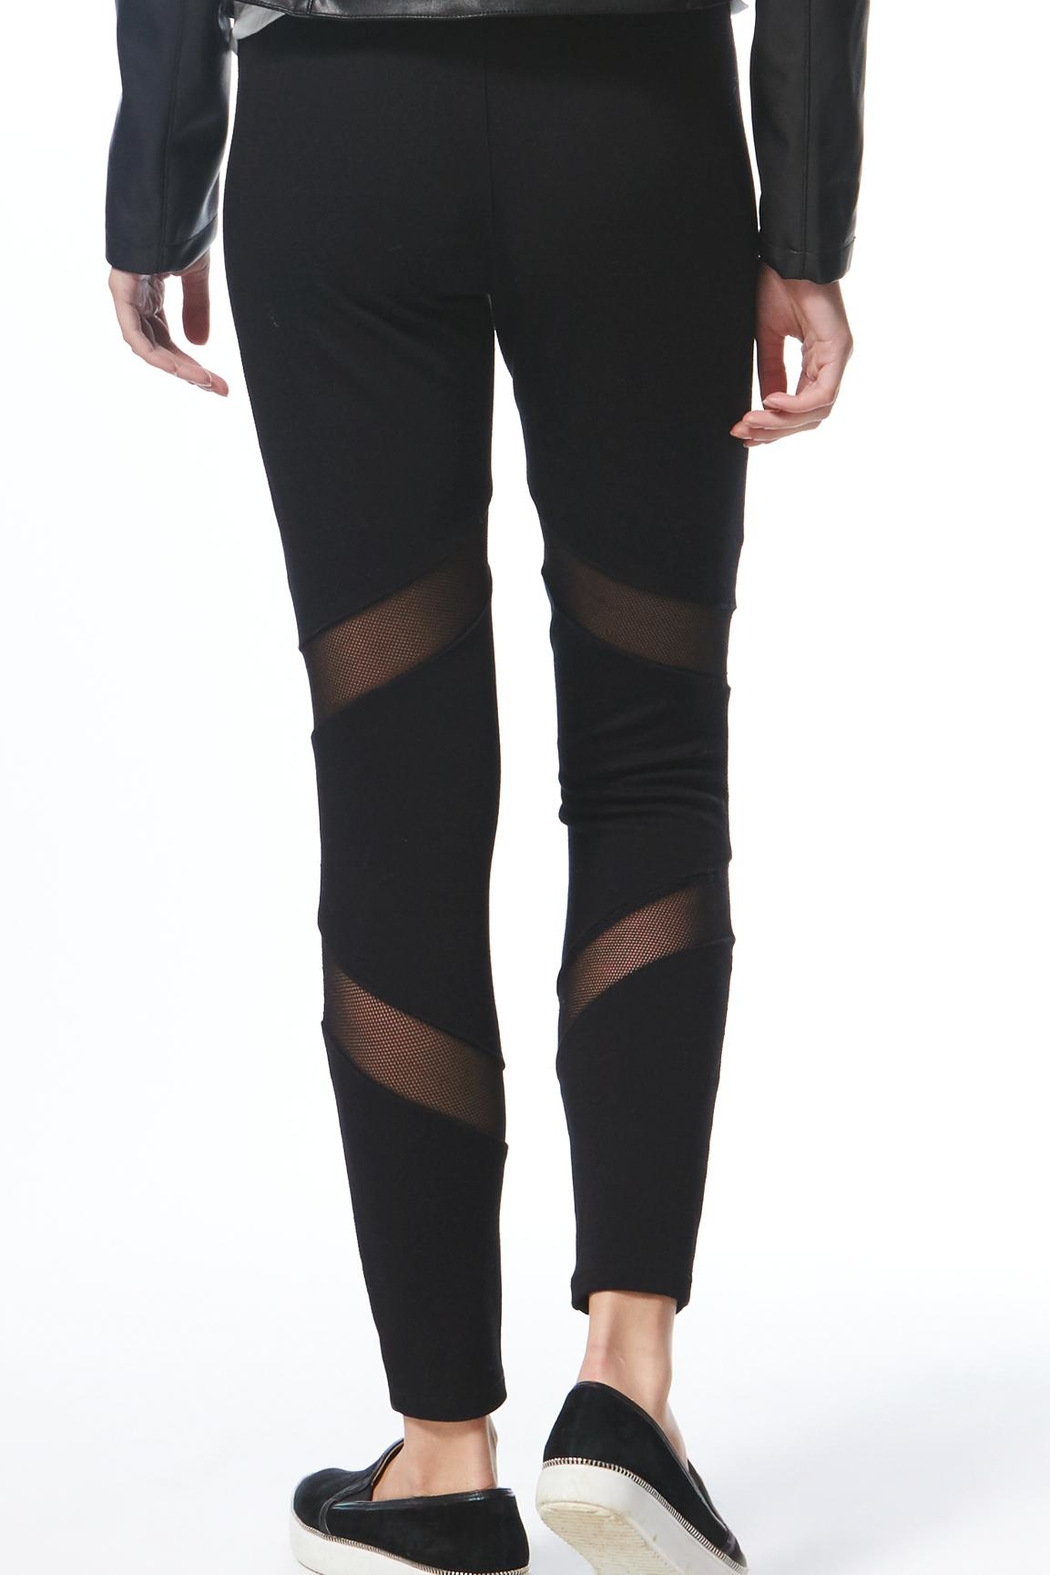 Tart Collections Nash Pant Leggings - Front Full Image